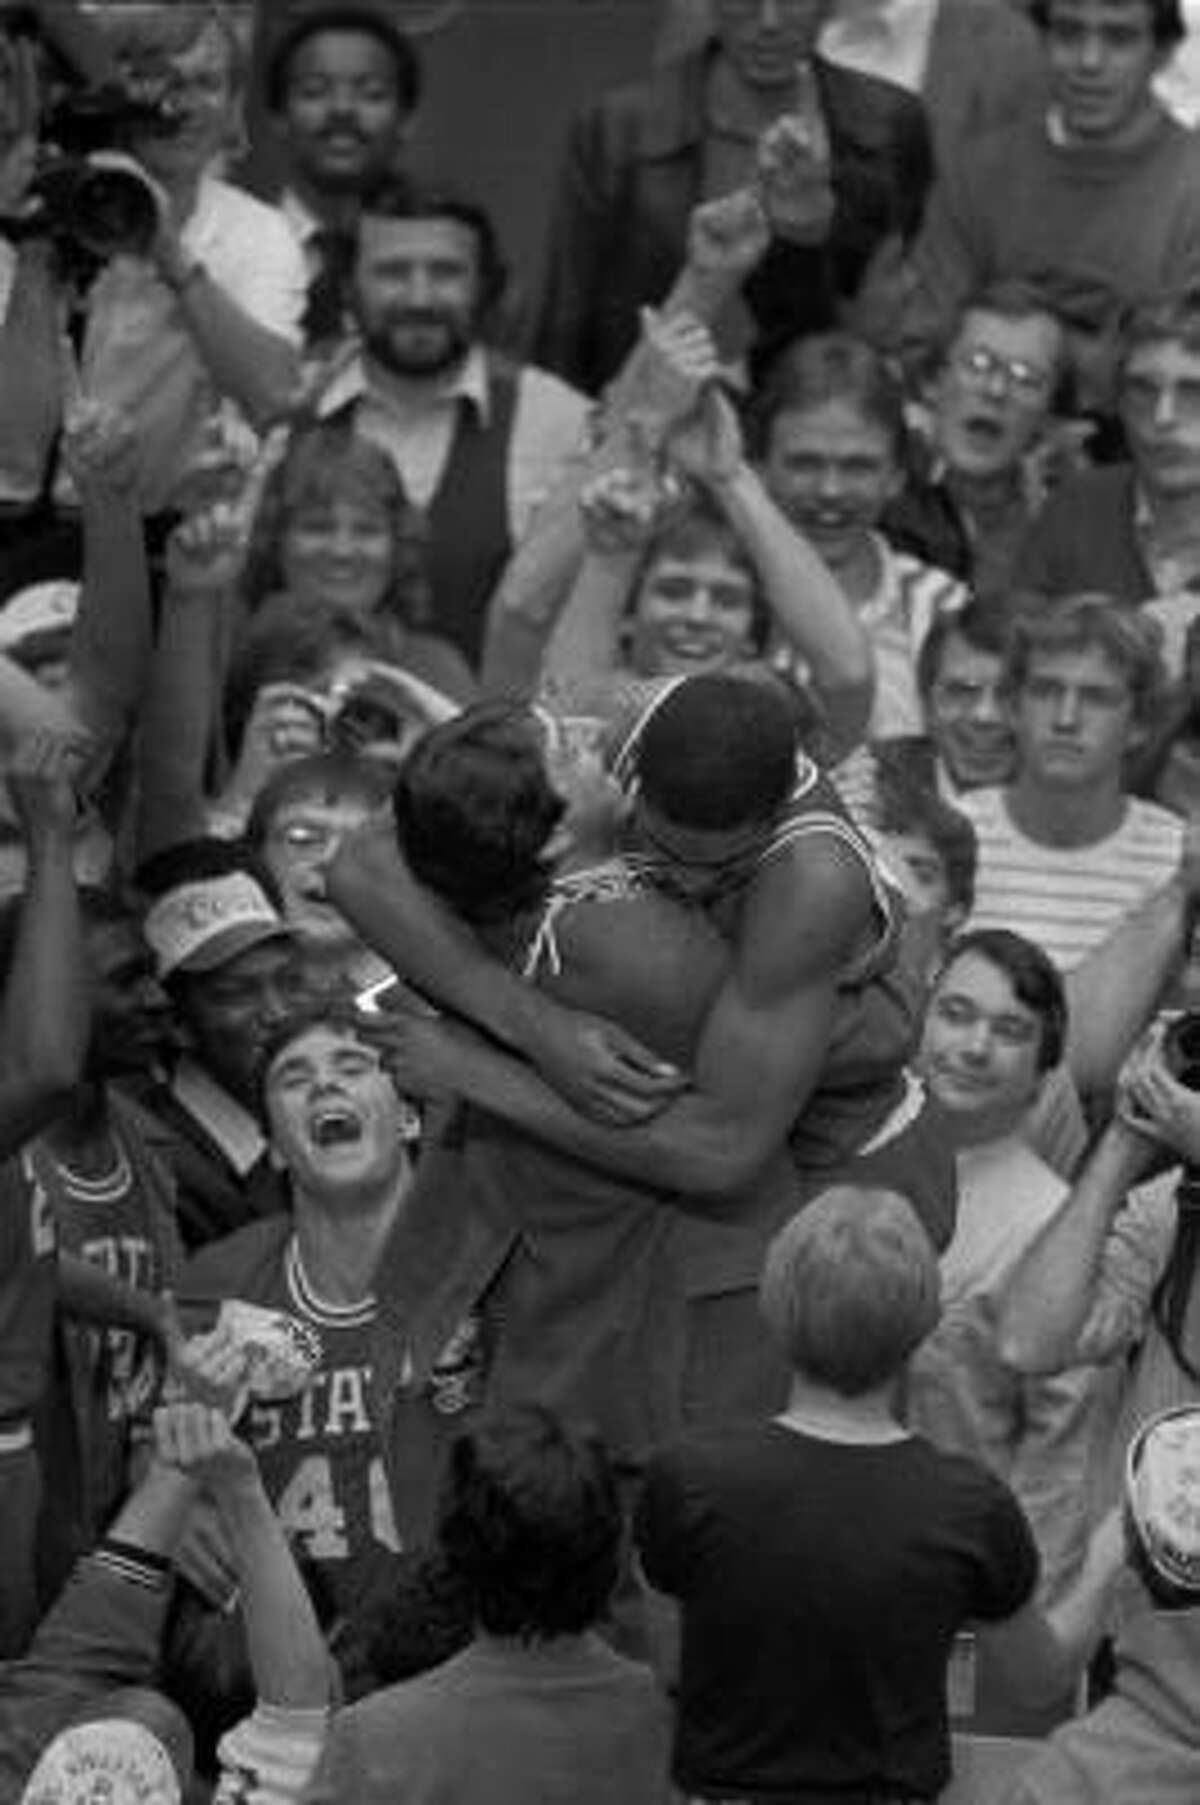 North Carolina State coach Jim Valvano embraces sophomore forward Lorenzo Charles moments after Charles had dunked a shot to give North Carolina State the win over the University of Houston April 5, 1983 in the NCAA final at Albuquerque. (AP Photo/Stf/Leonard Ignelzi)